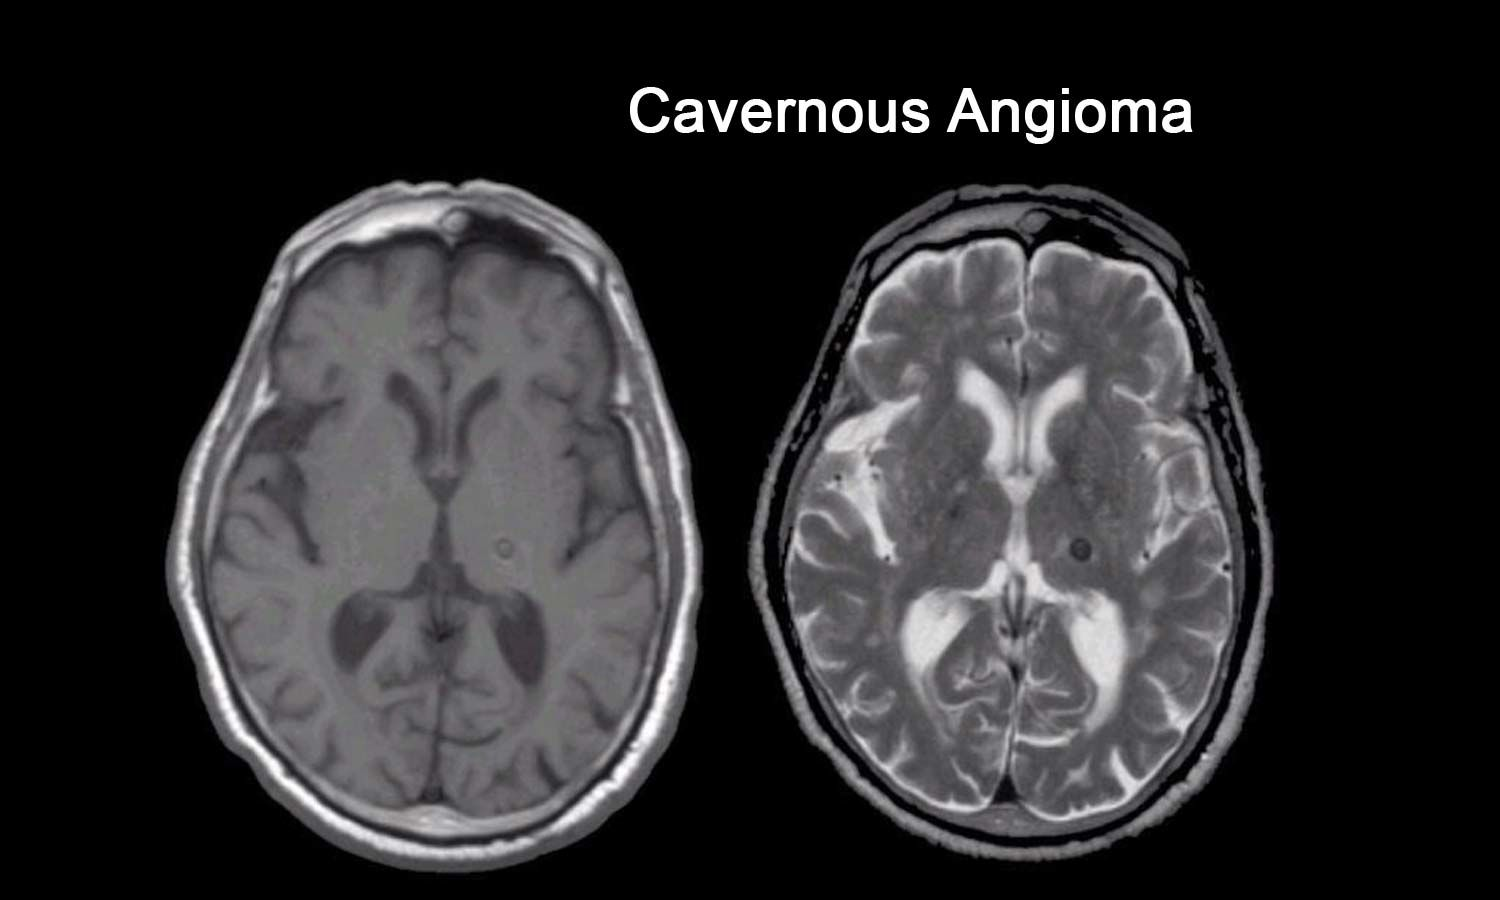 Study links cavernous angioma with disordered gut microbiome